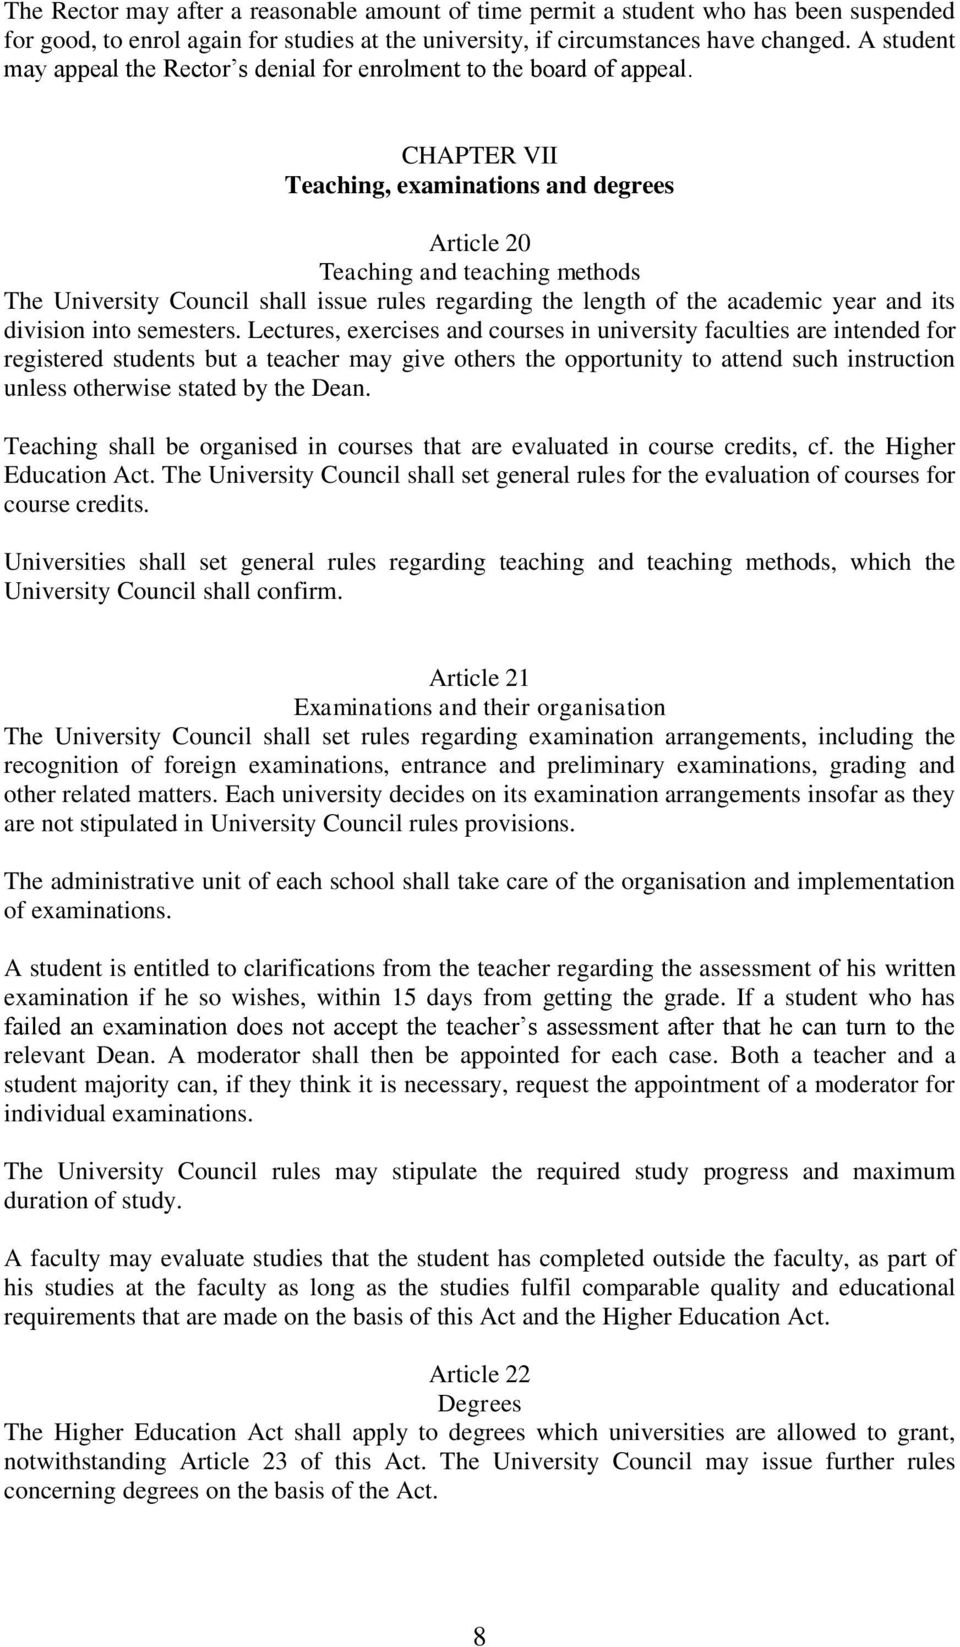 CHAPTER VII Teaching, examinations and degrees Article 20 Teaching and teaching methods The University Council shall issue rules regarding the length of the academic year and its division into